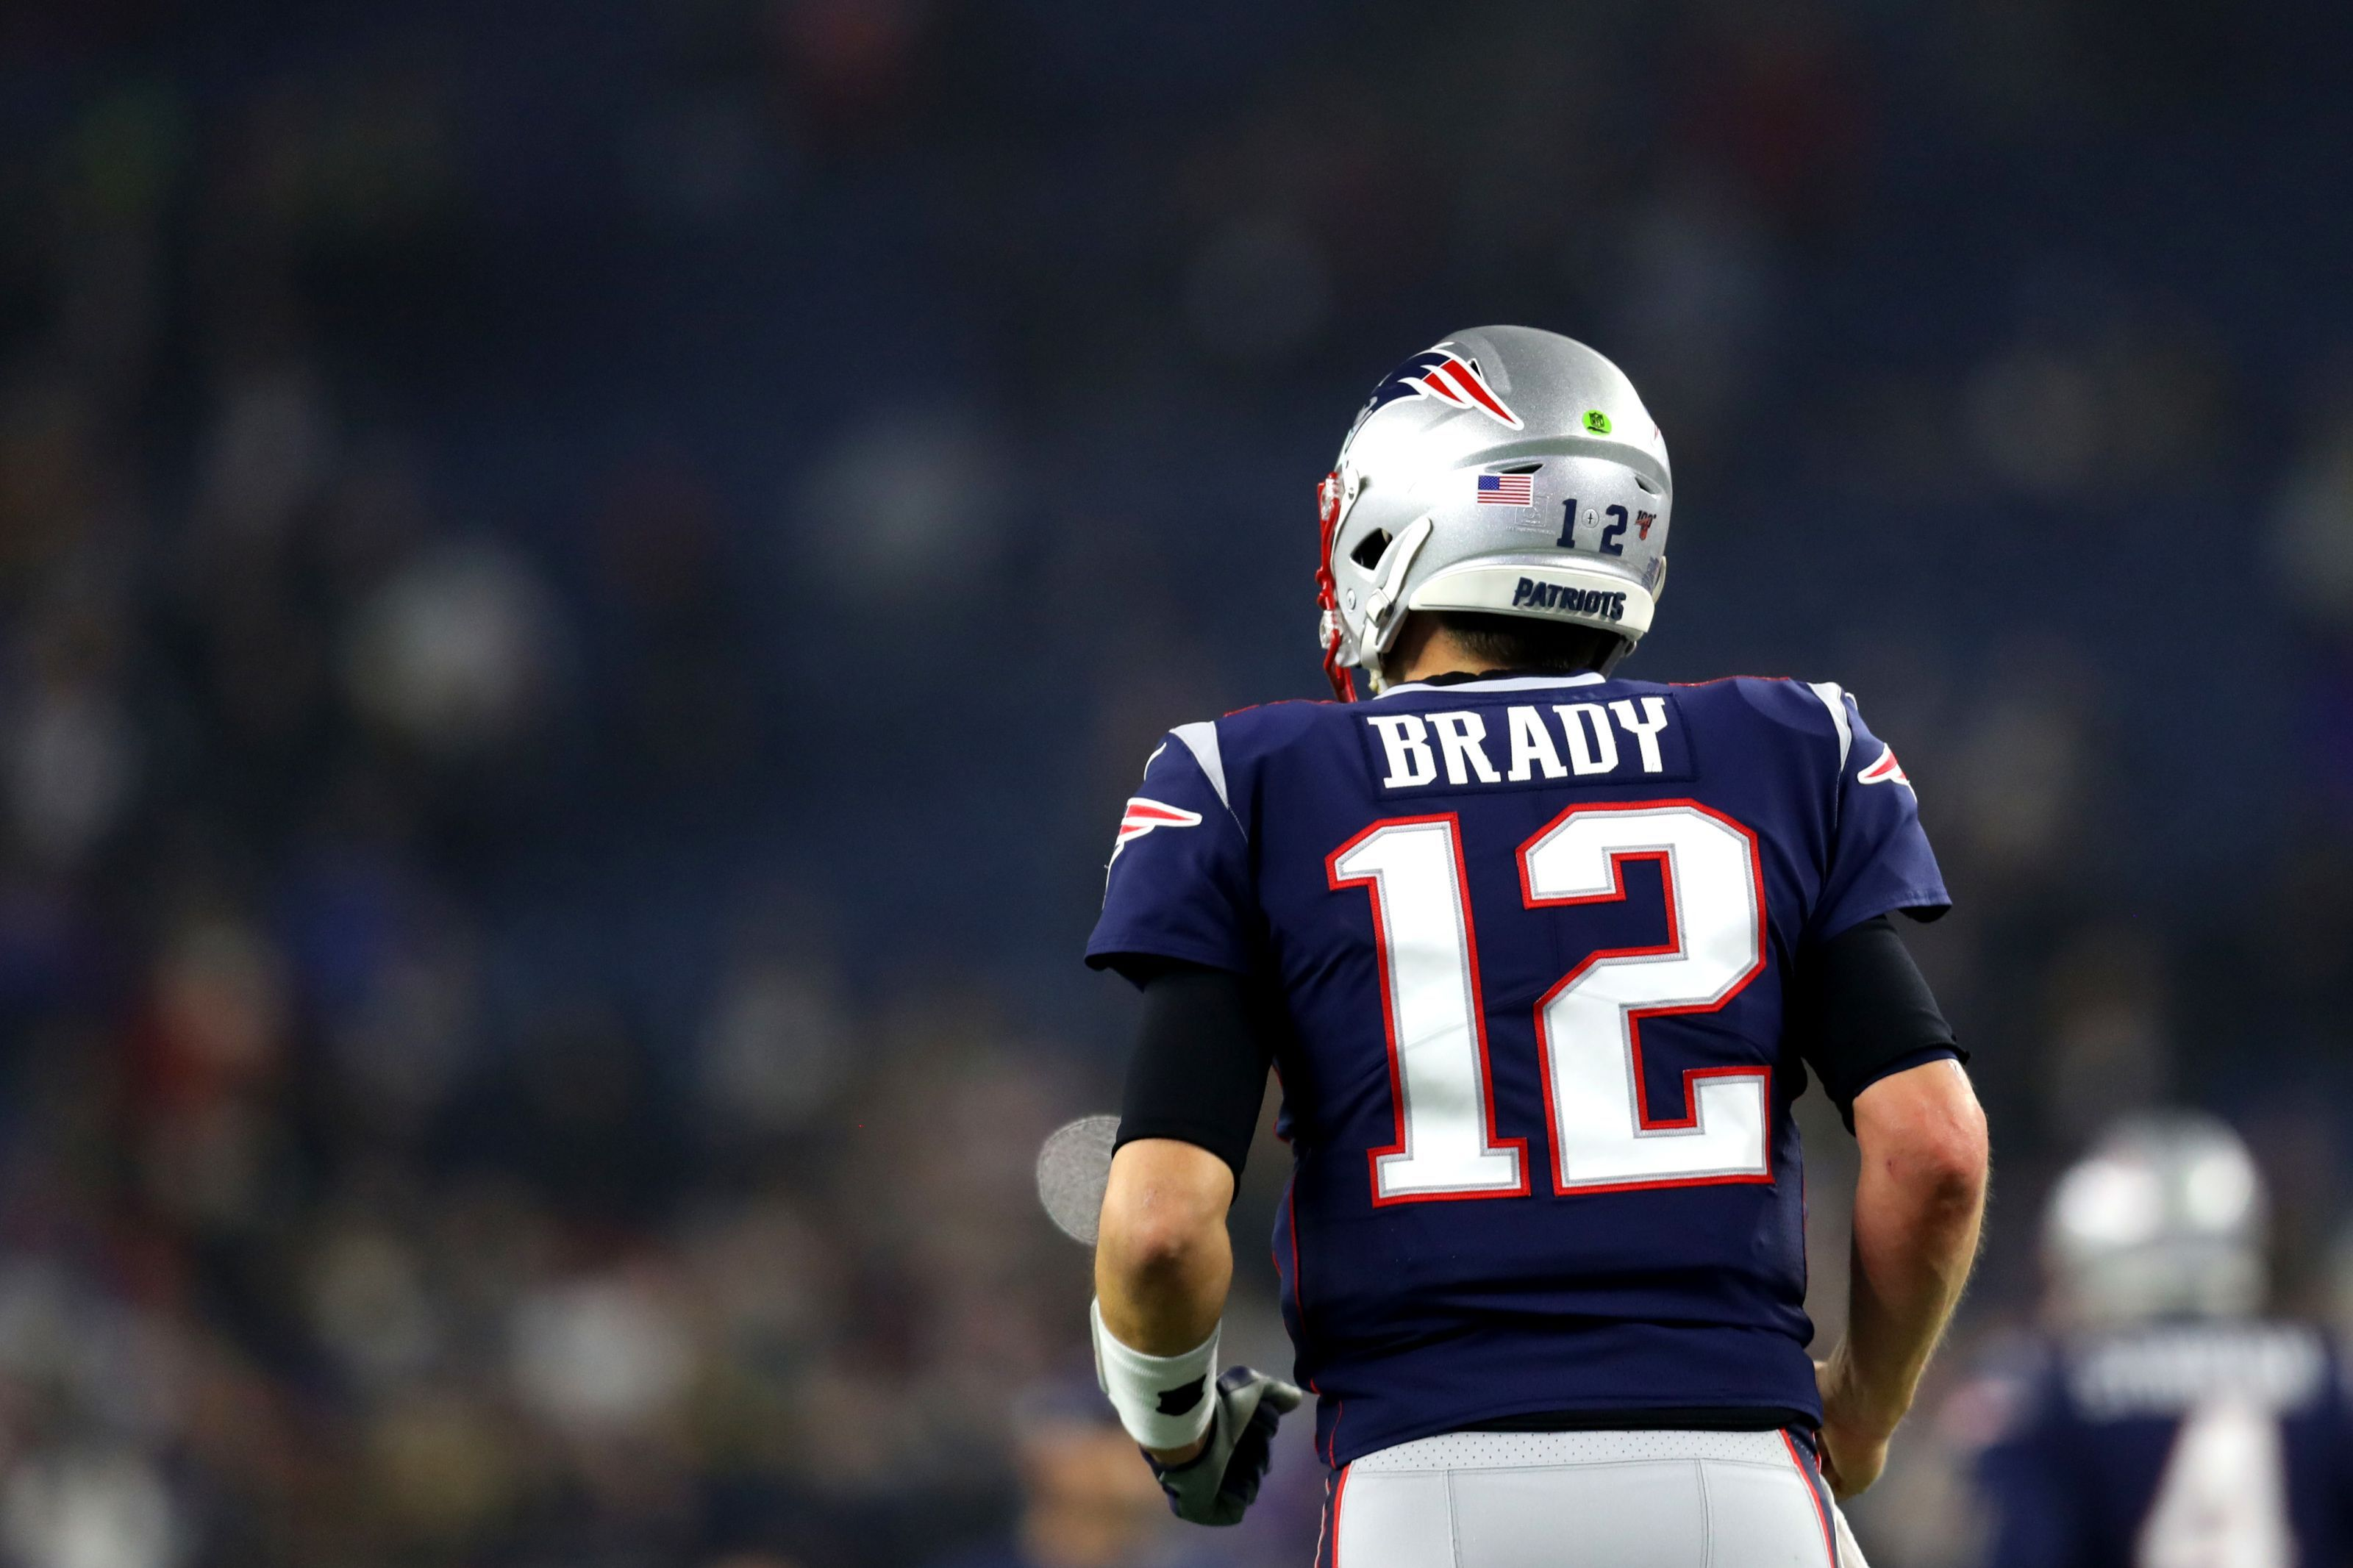 New England Patriots Tom Brady S Free Agency Saga Most Compelling National Football League News Will Tom B In 2020 Nfl News National Football League Football League